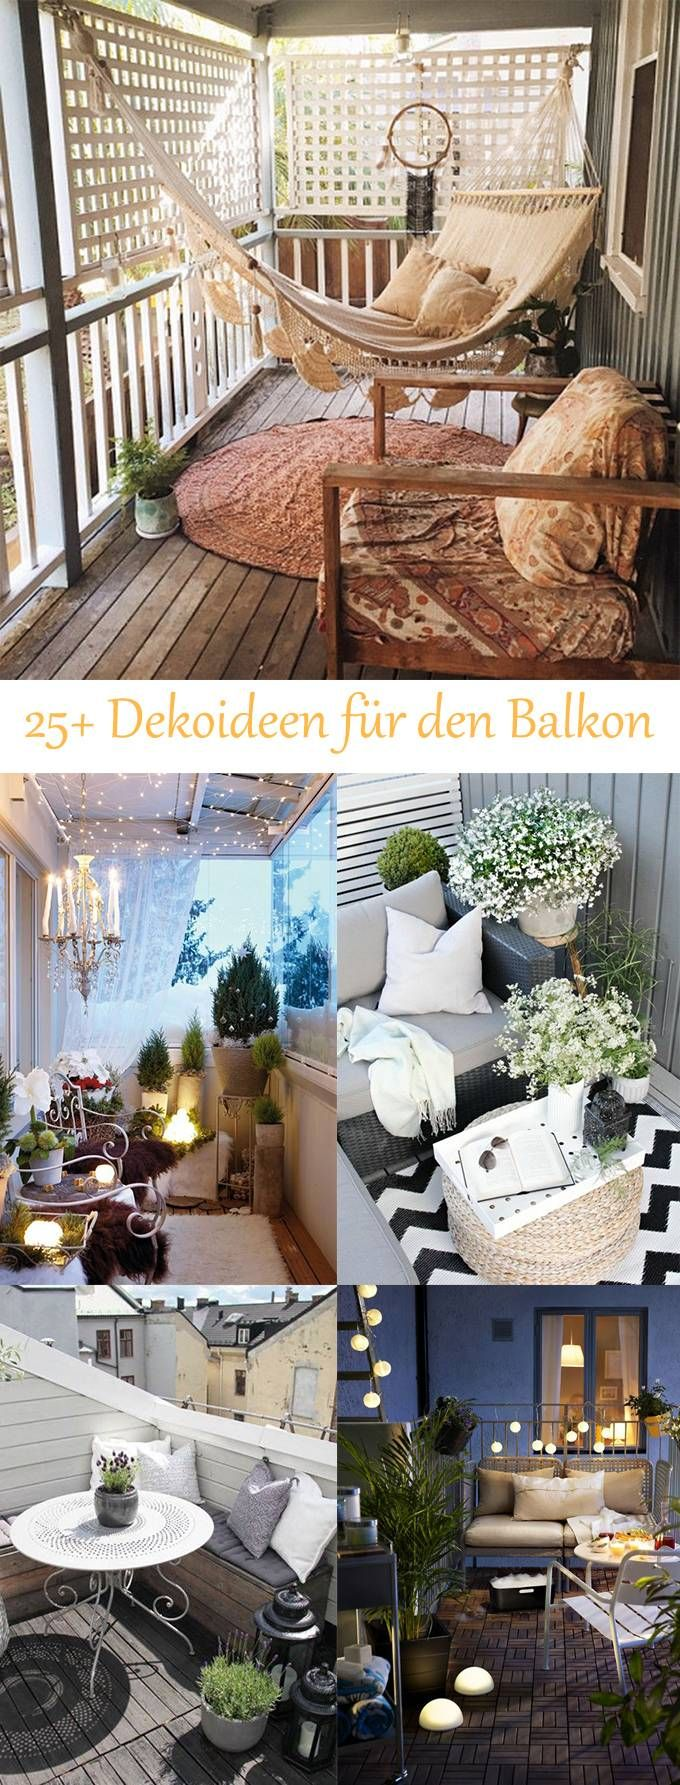 How to decorate your balcony Great DIY deco ideas for your home